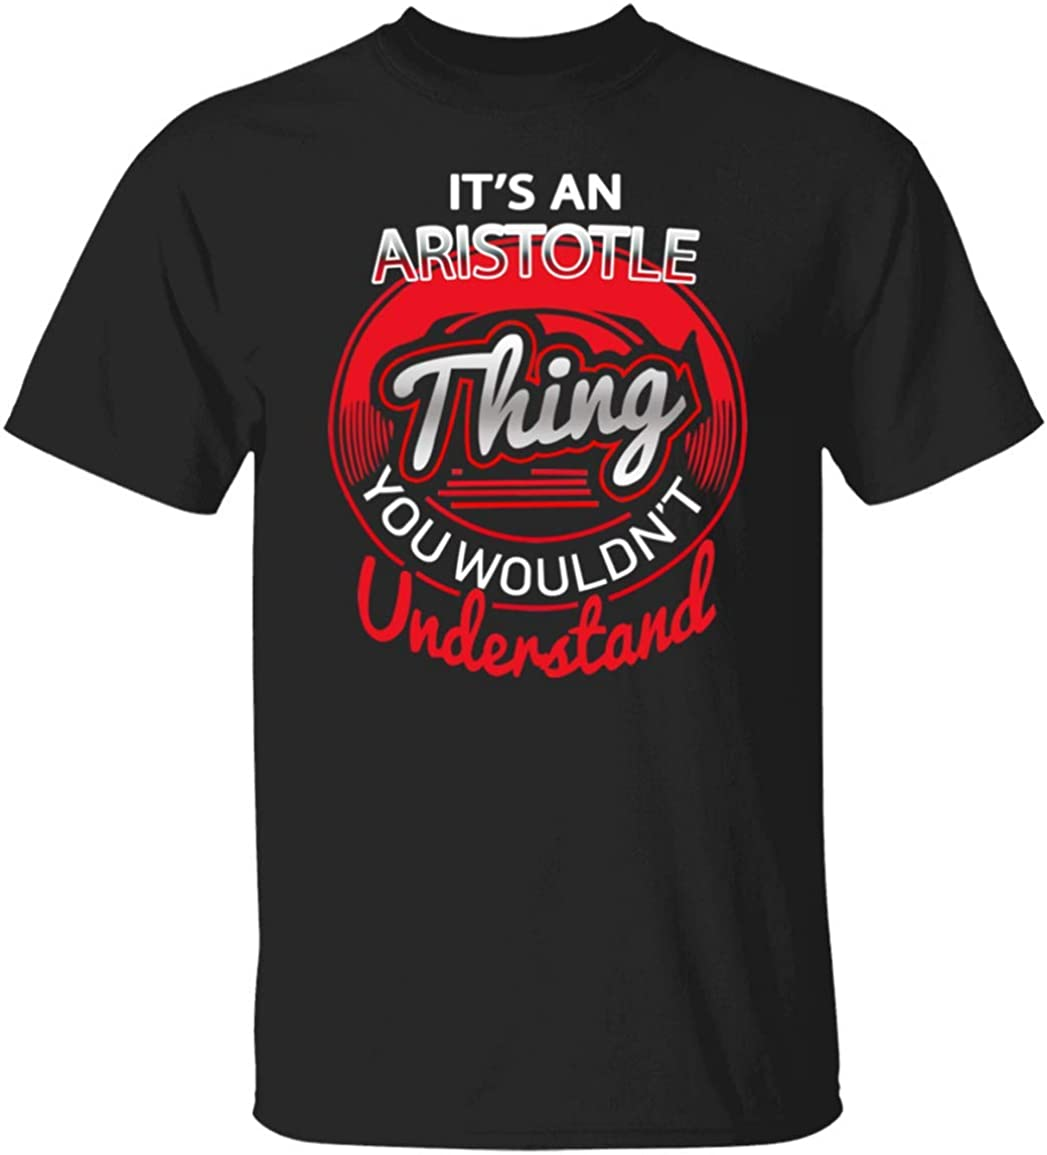 It's Aristotle Thing Cotton T Shirt Personalized Name Gift for Men Women